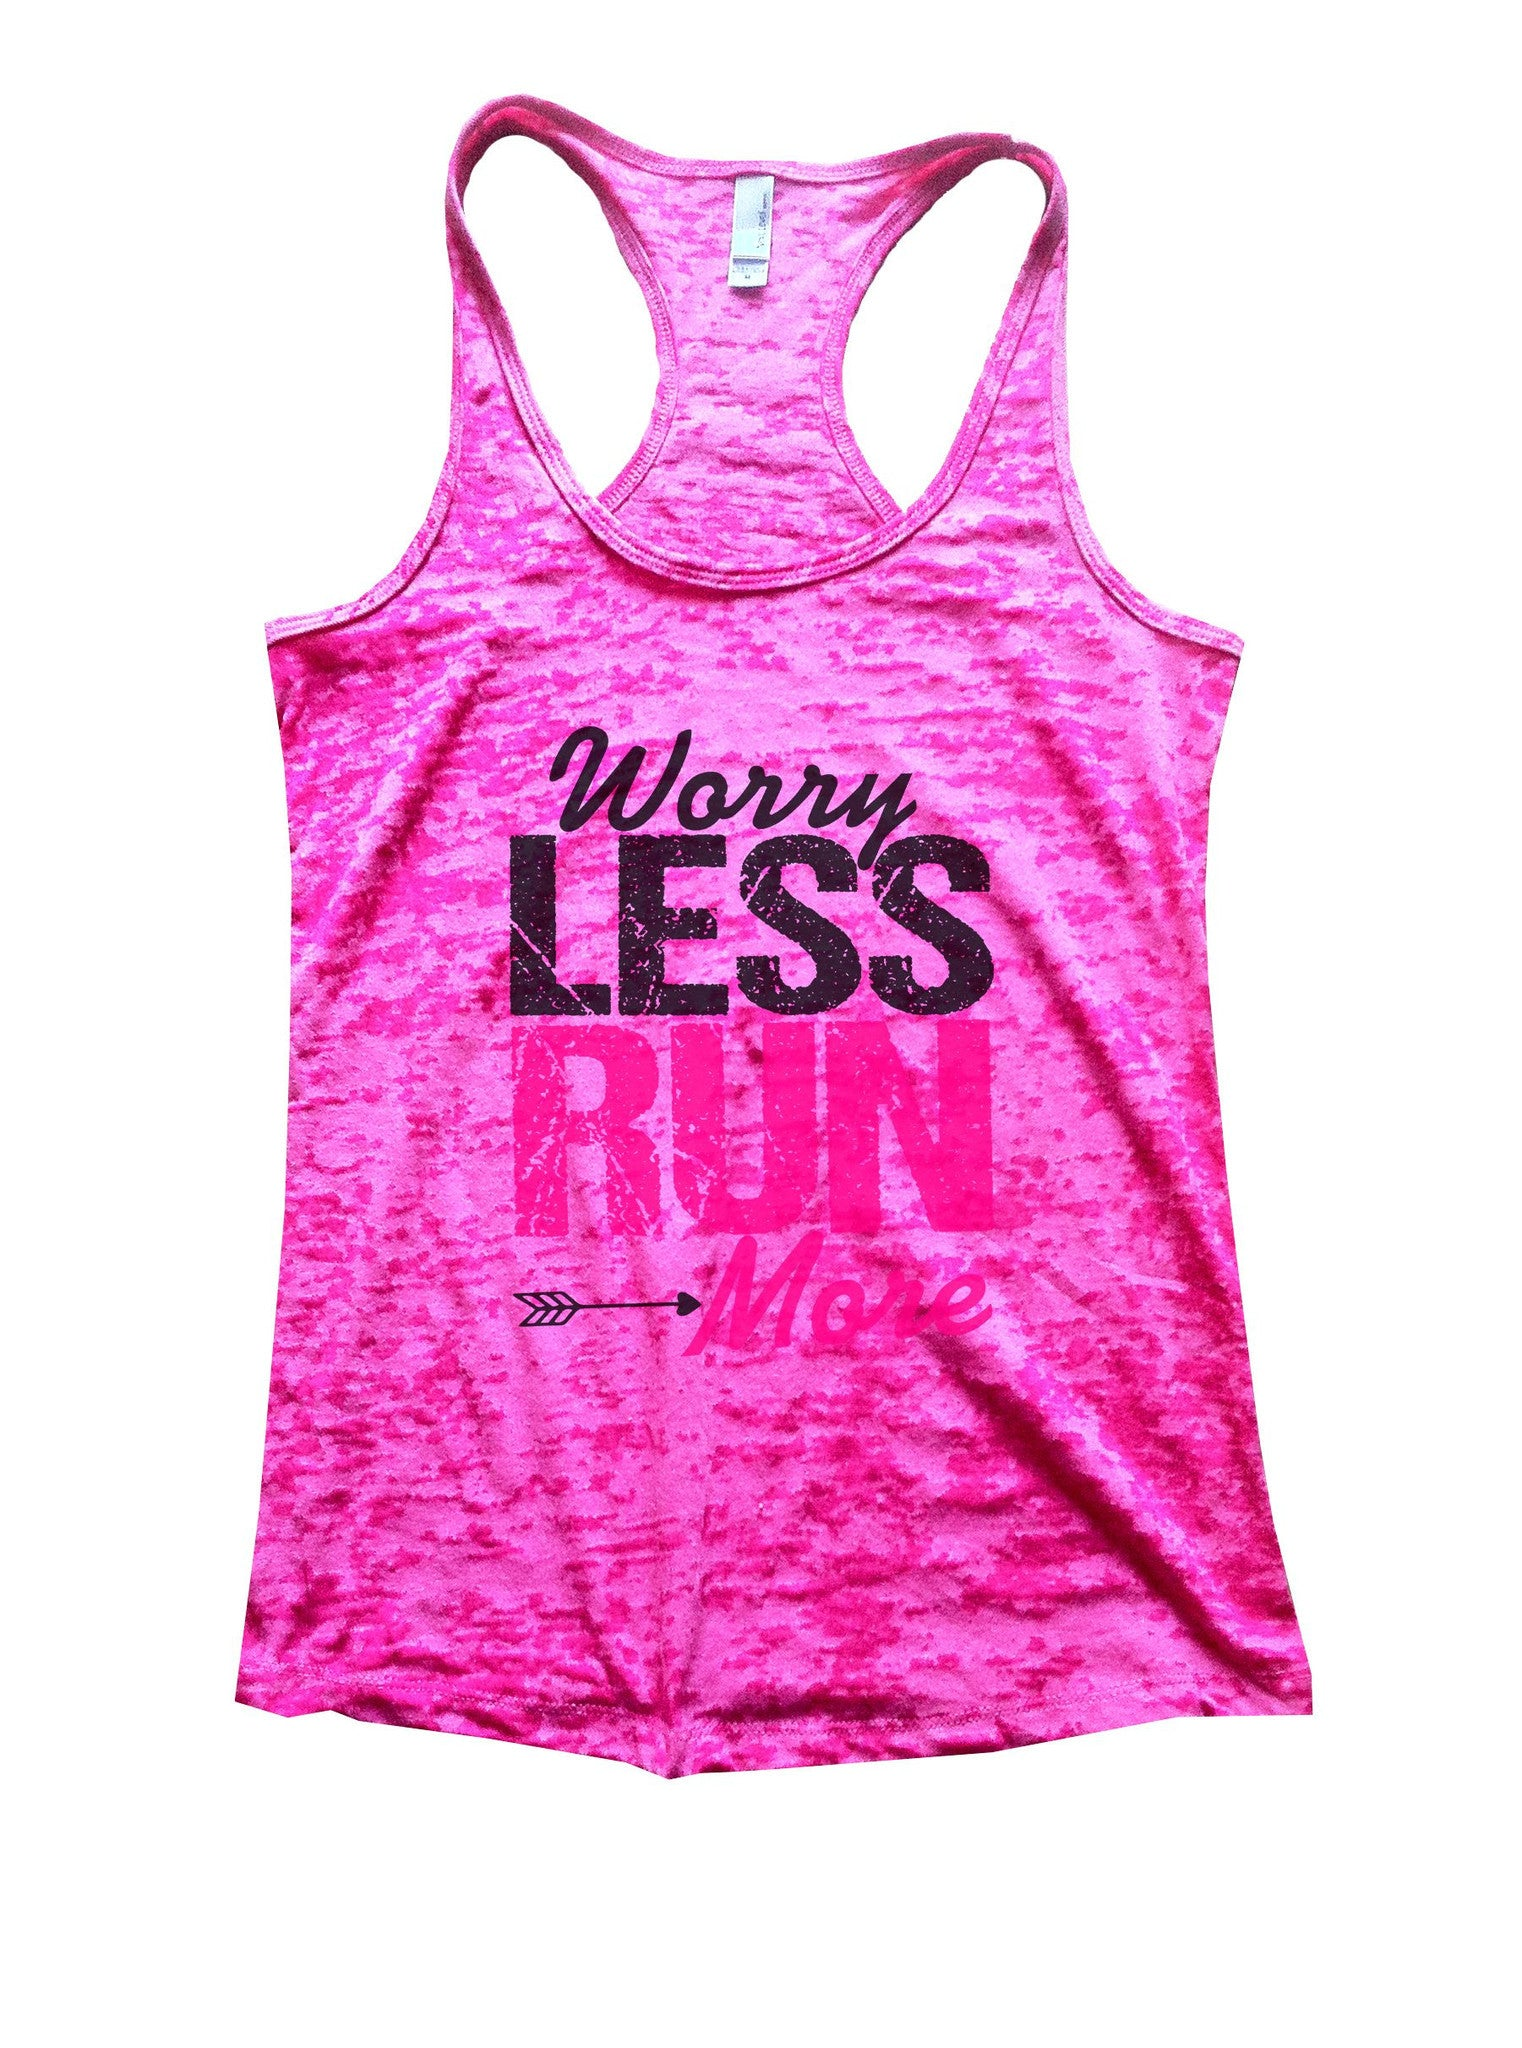 Worry Less Run More Burnout Tank Top By BurnoutTankTops.com - 1019 - Funny Shirts Tank Tops Burnouts and Triblends  - 5